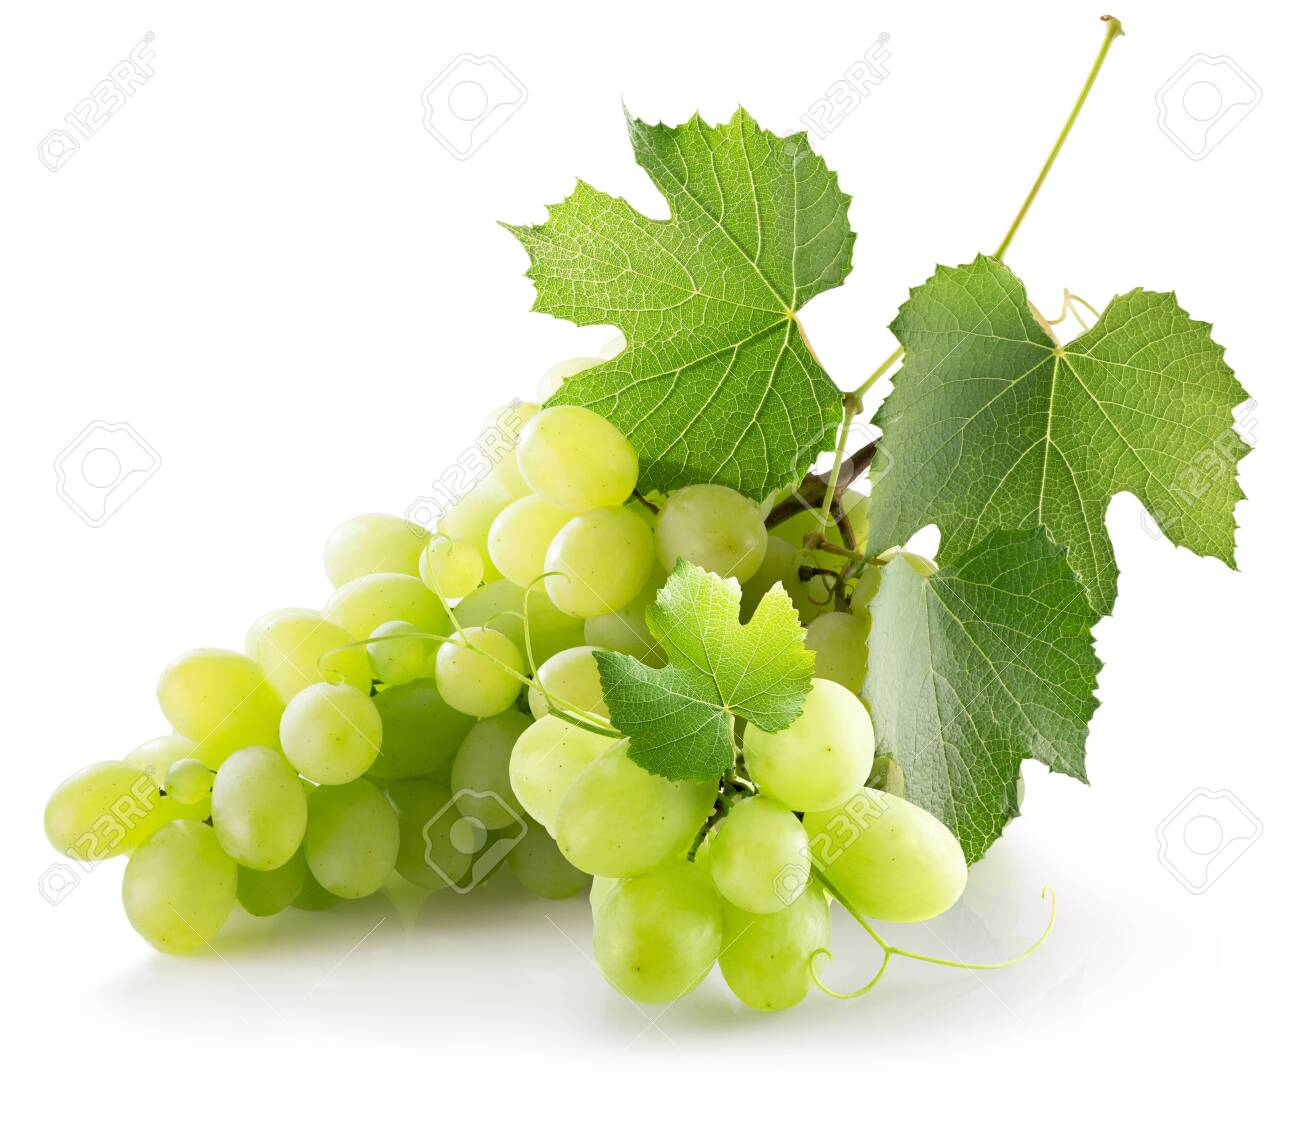 green grapes isolated on a white background. - 125008739